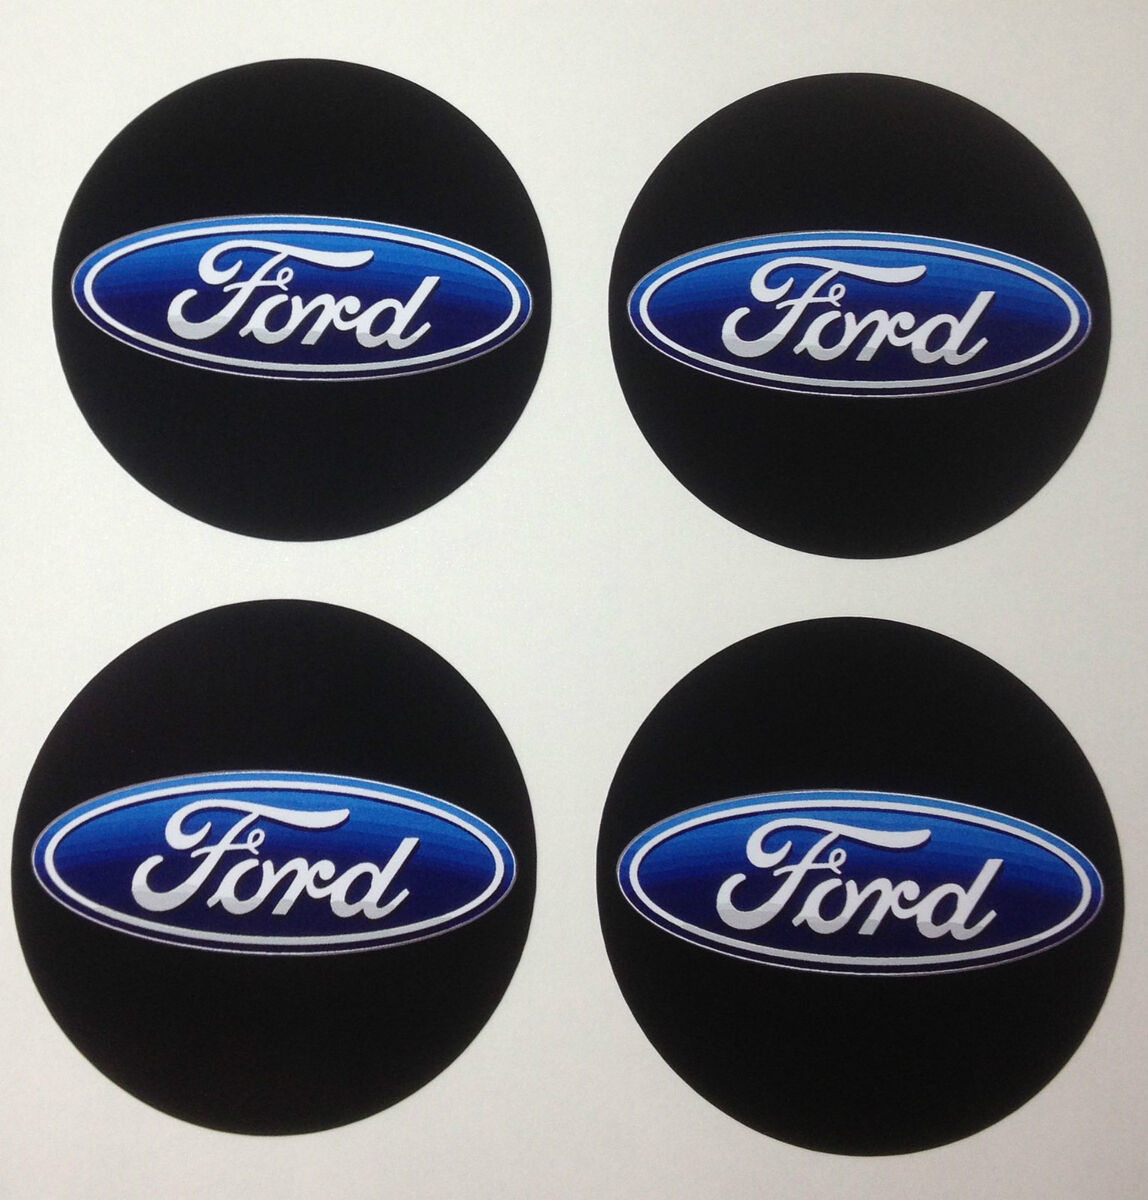 Ford Wheel Center Cap Decals Stickers Qty 4